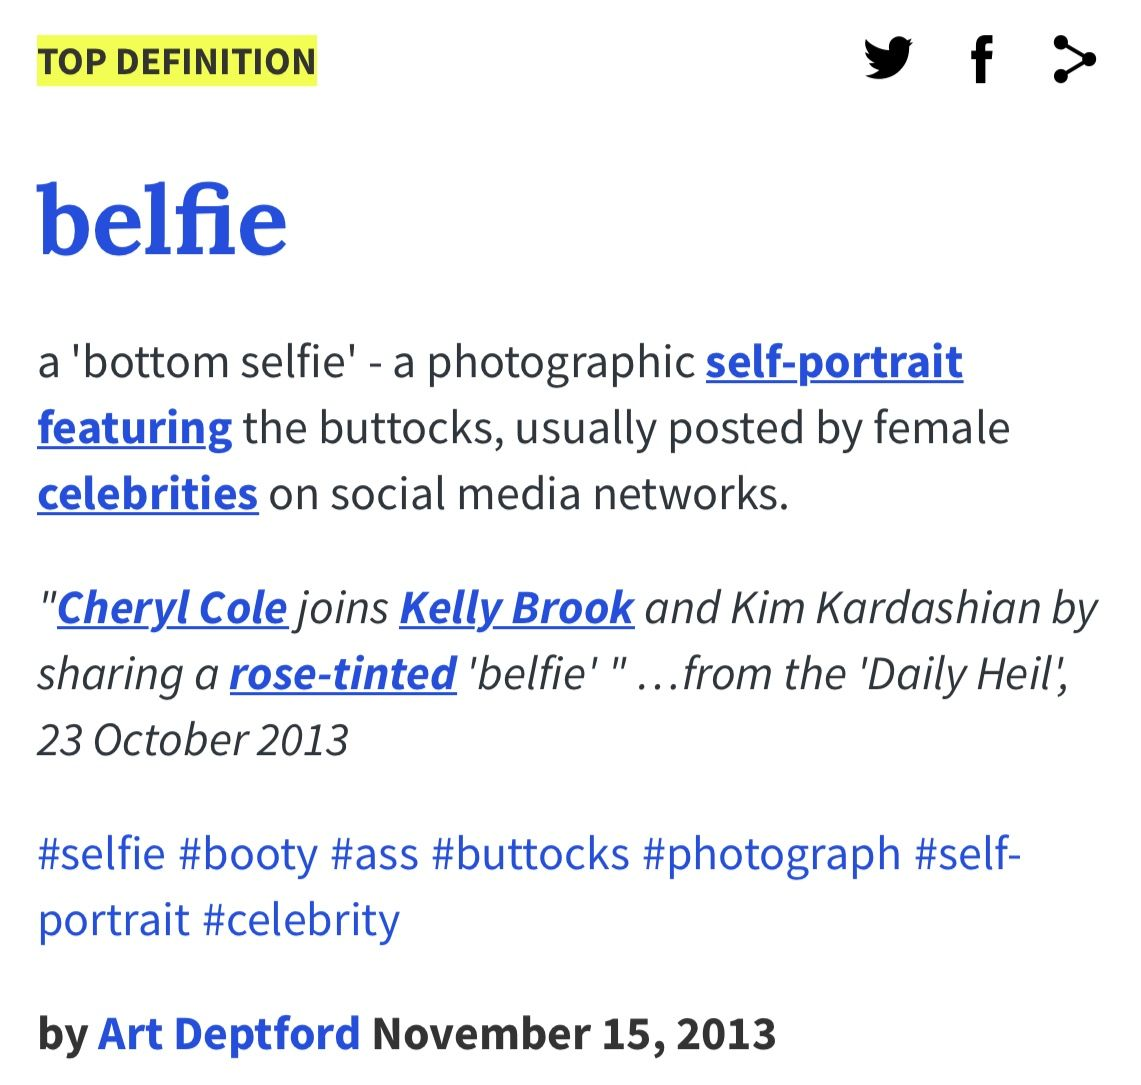 14 Hilarious Lord Of The Rings Urban Dictionary Definitions Urban Dictionary Hilarious Dictionary Definitions